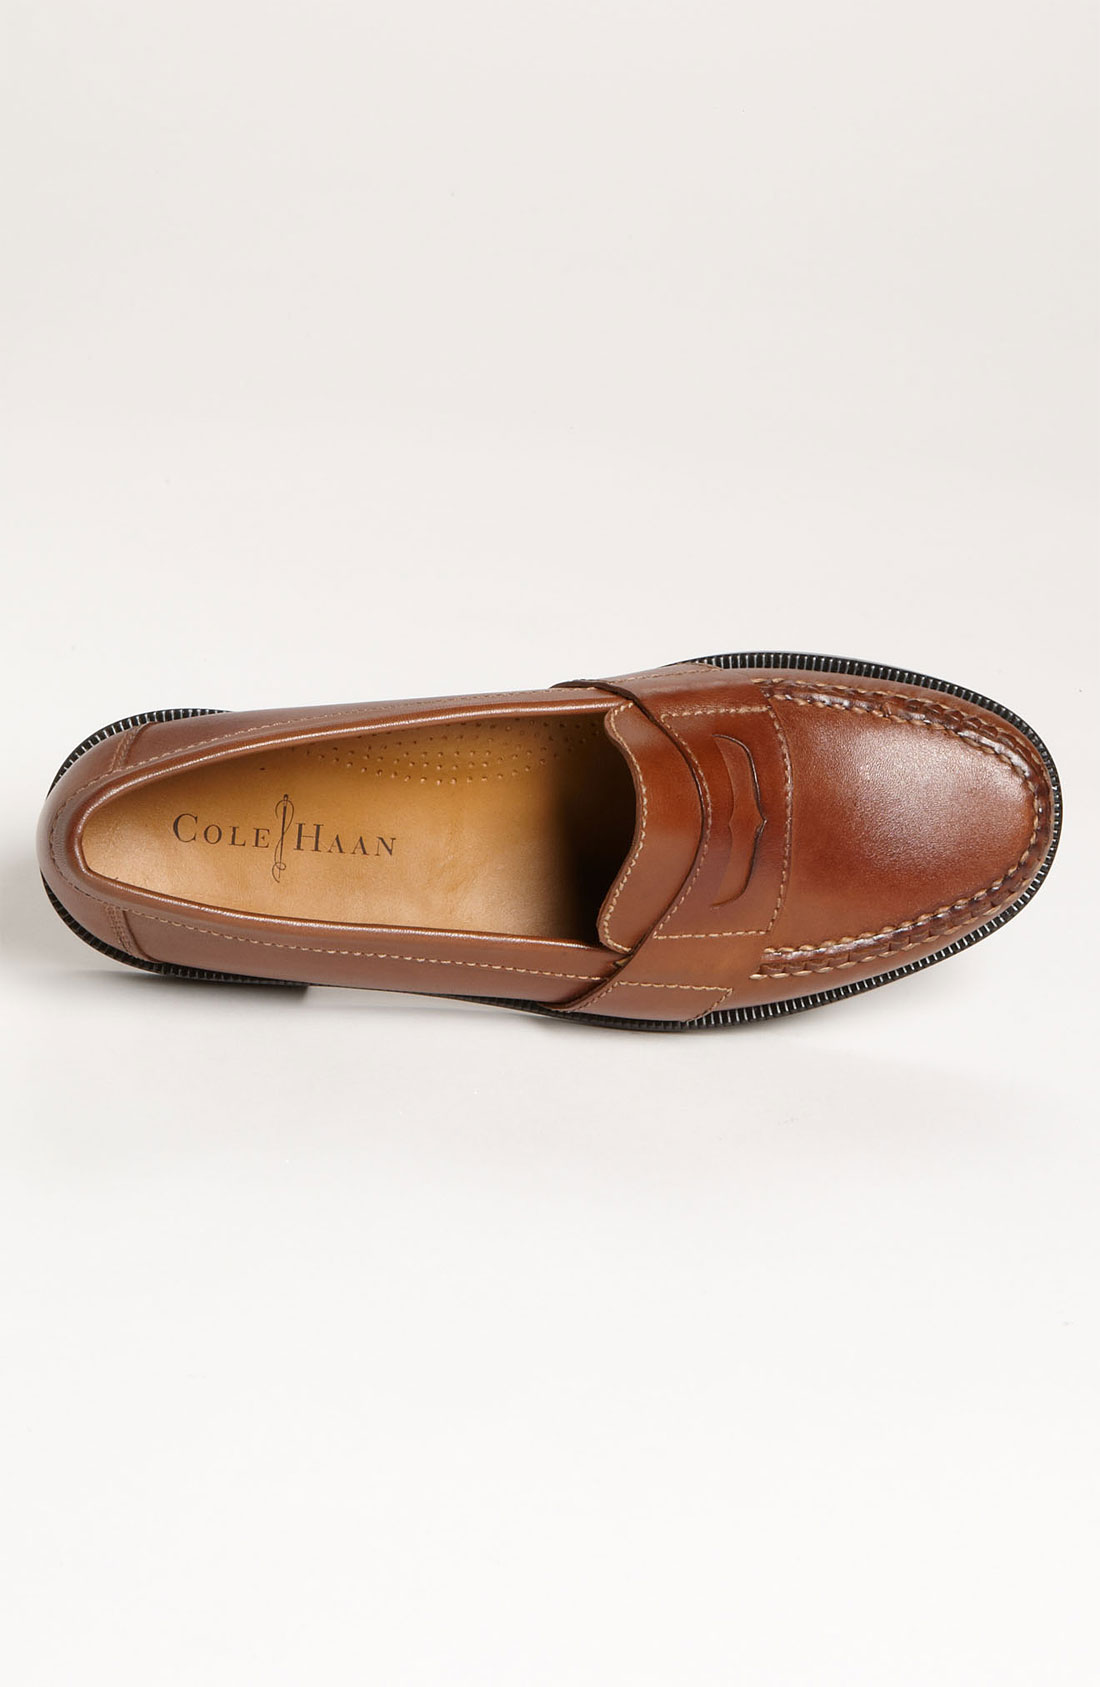 Cole Haan Shoes Online International Shipping